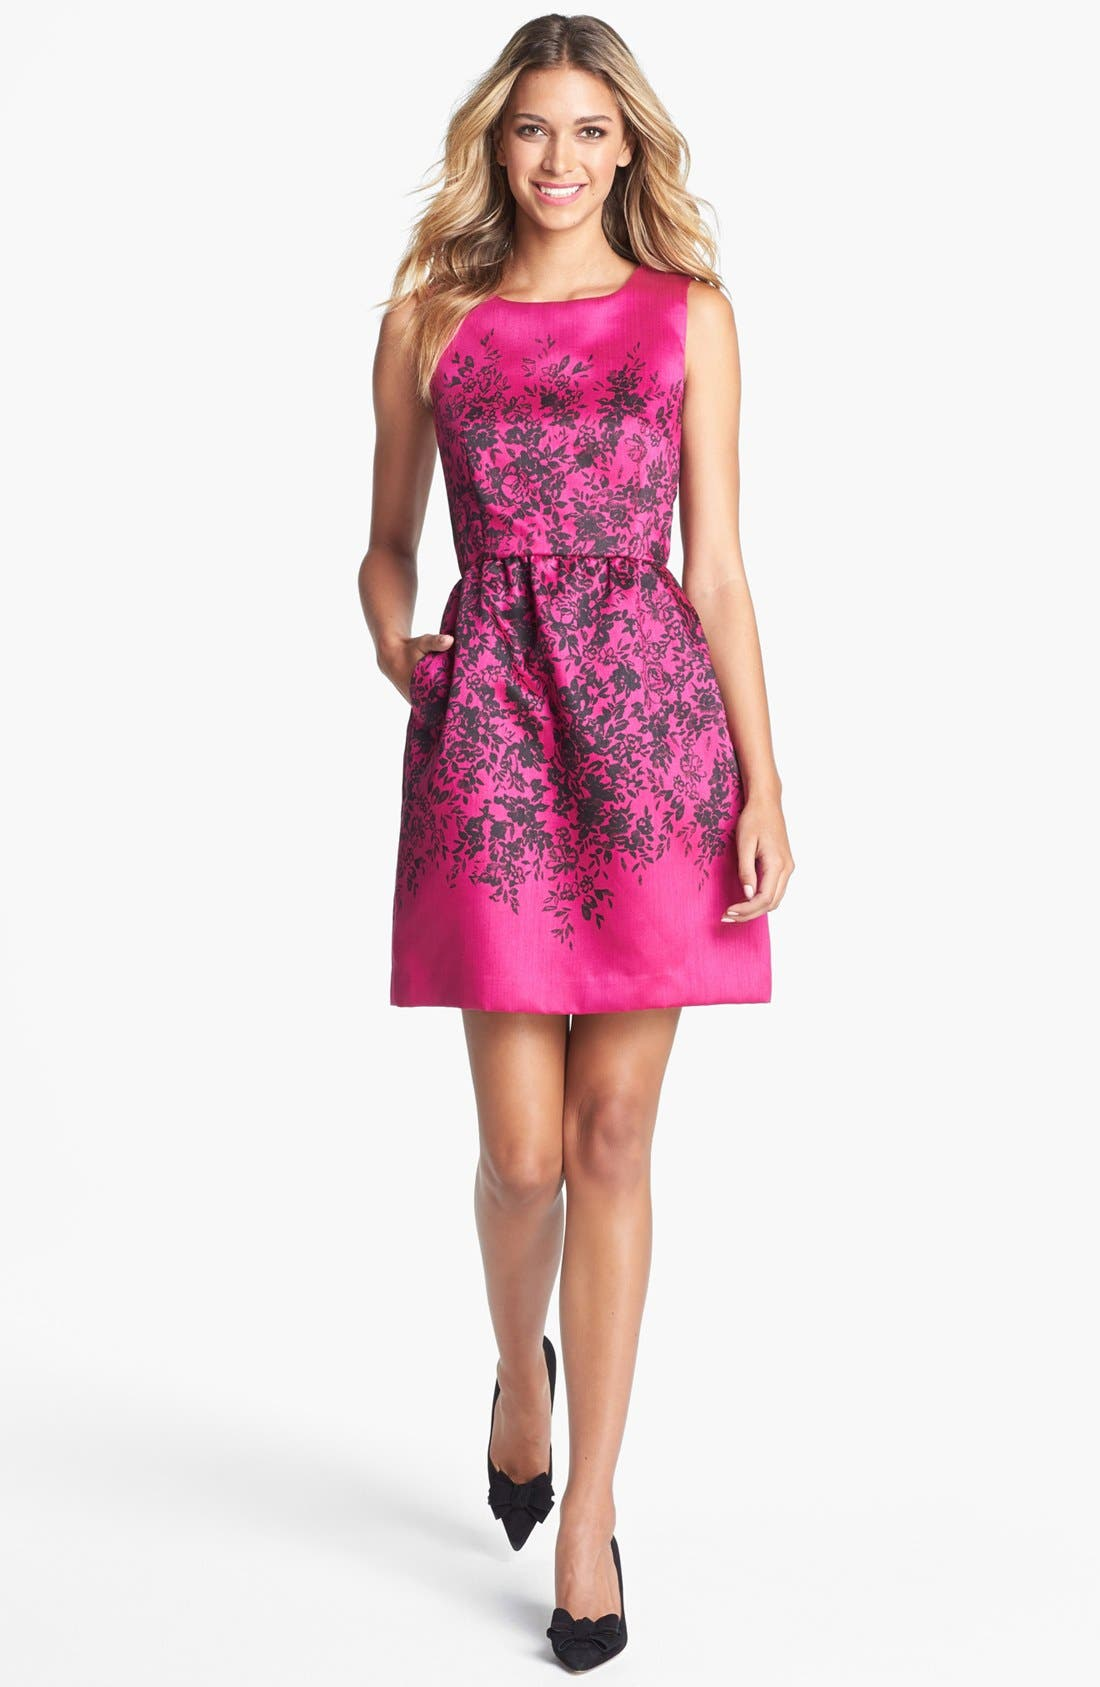 Main Image - Taylor Dresses Print Fit & Flare Dress